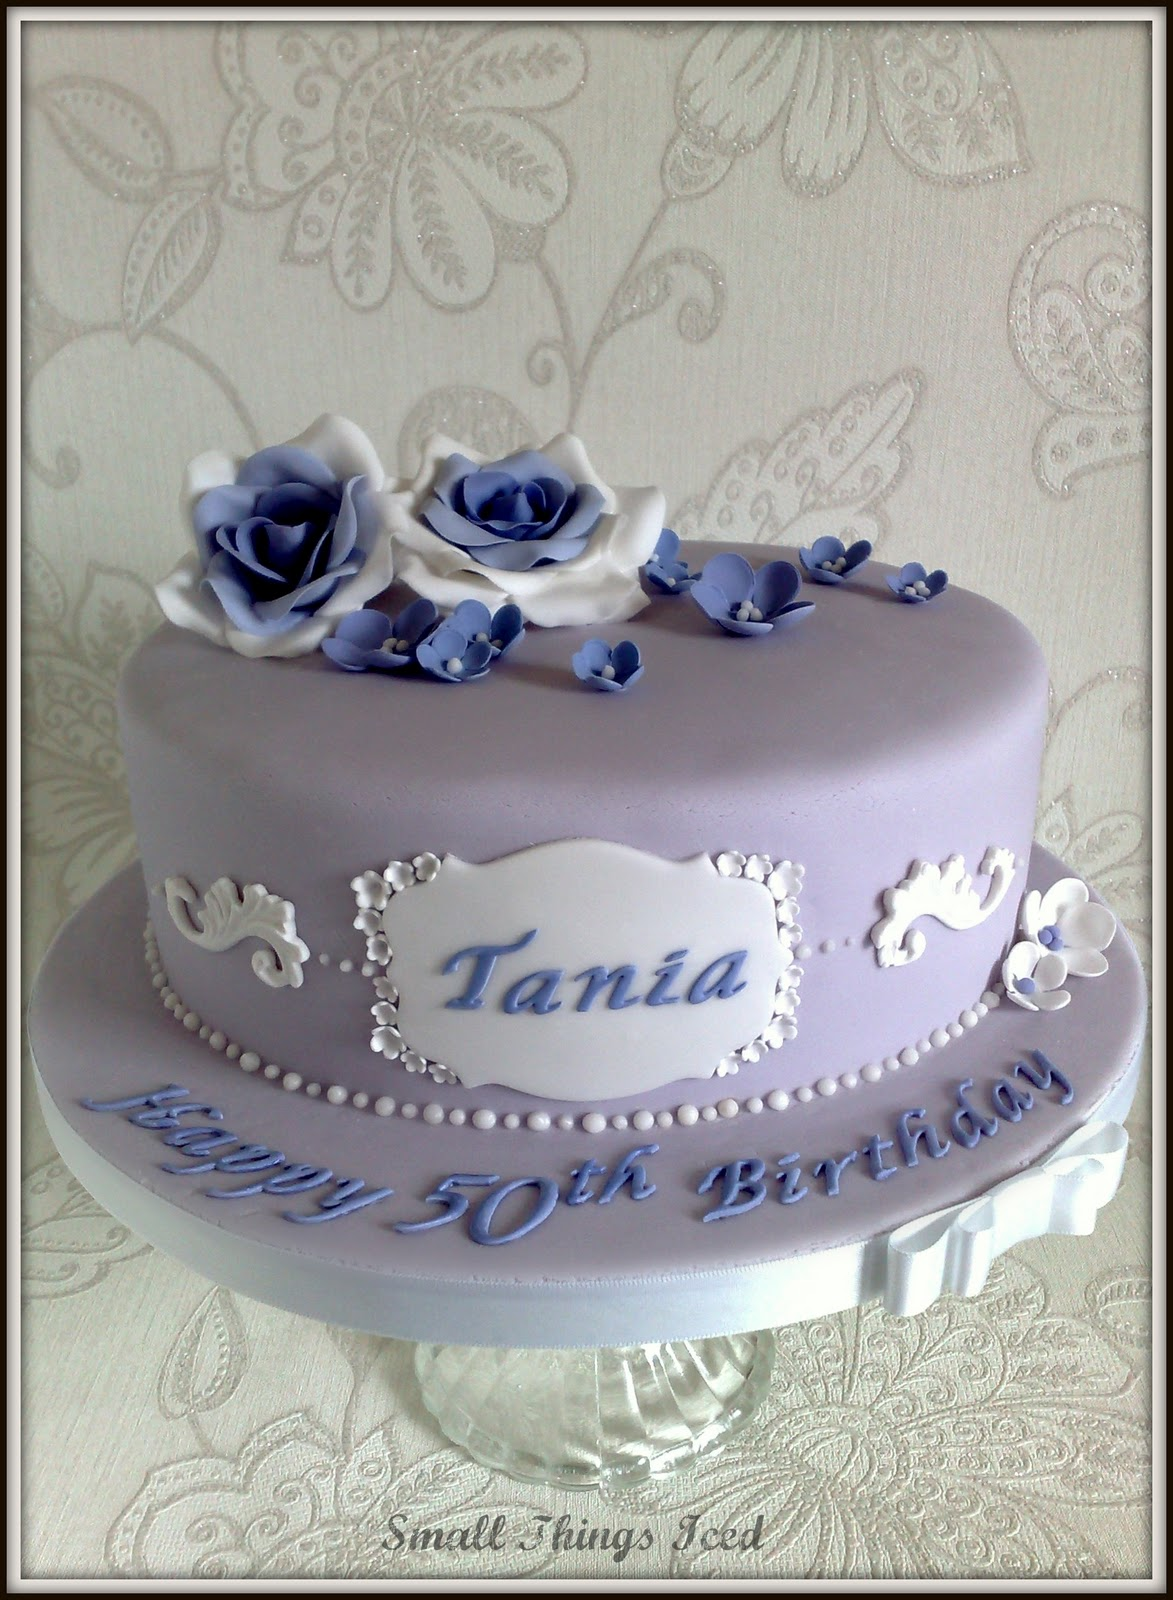 Small Things Iced VINTAGE BIRTHDAY CAKE